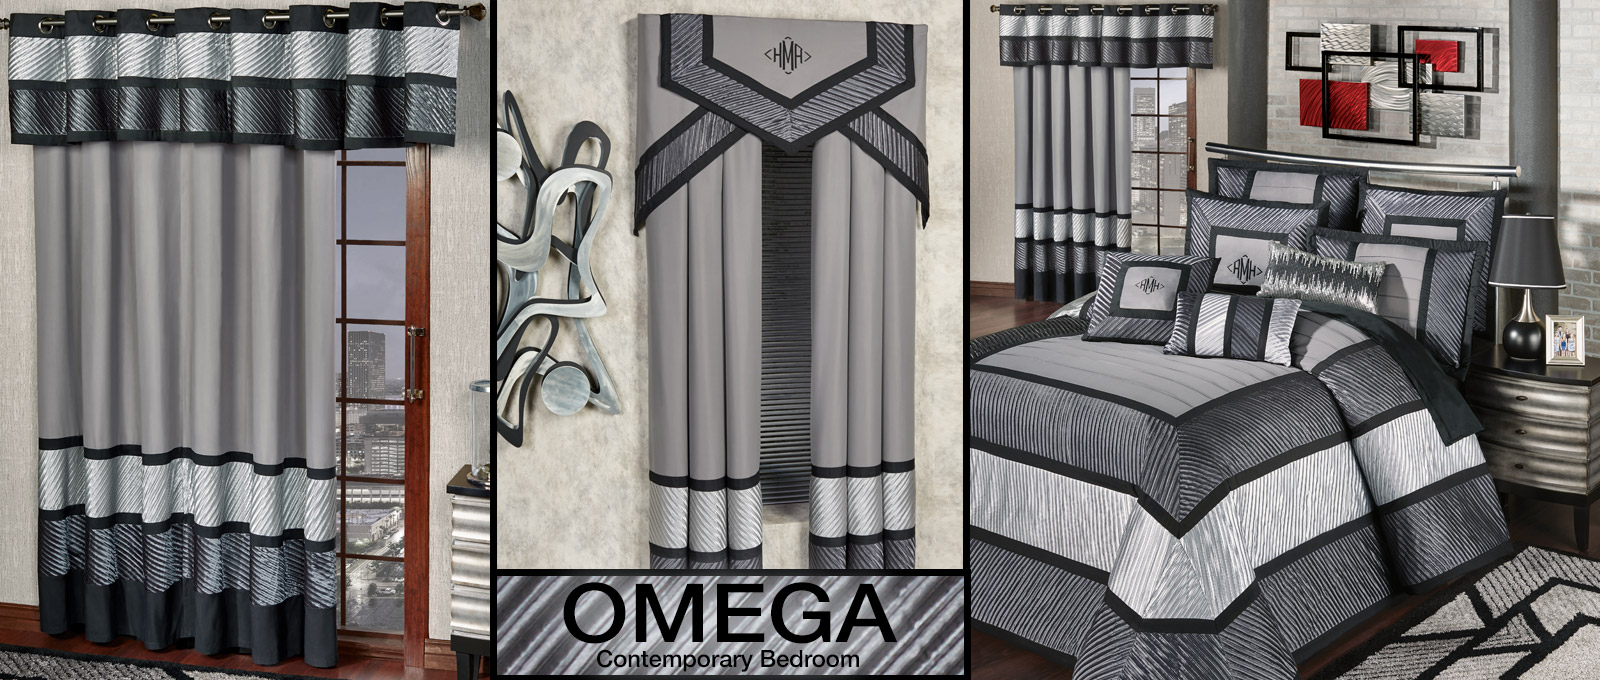 Get The Look - Omega Contemporary Bedroom